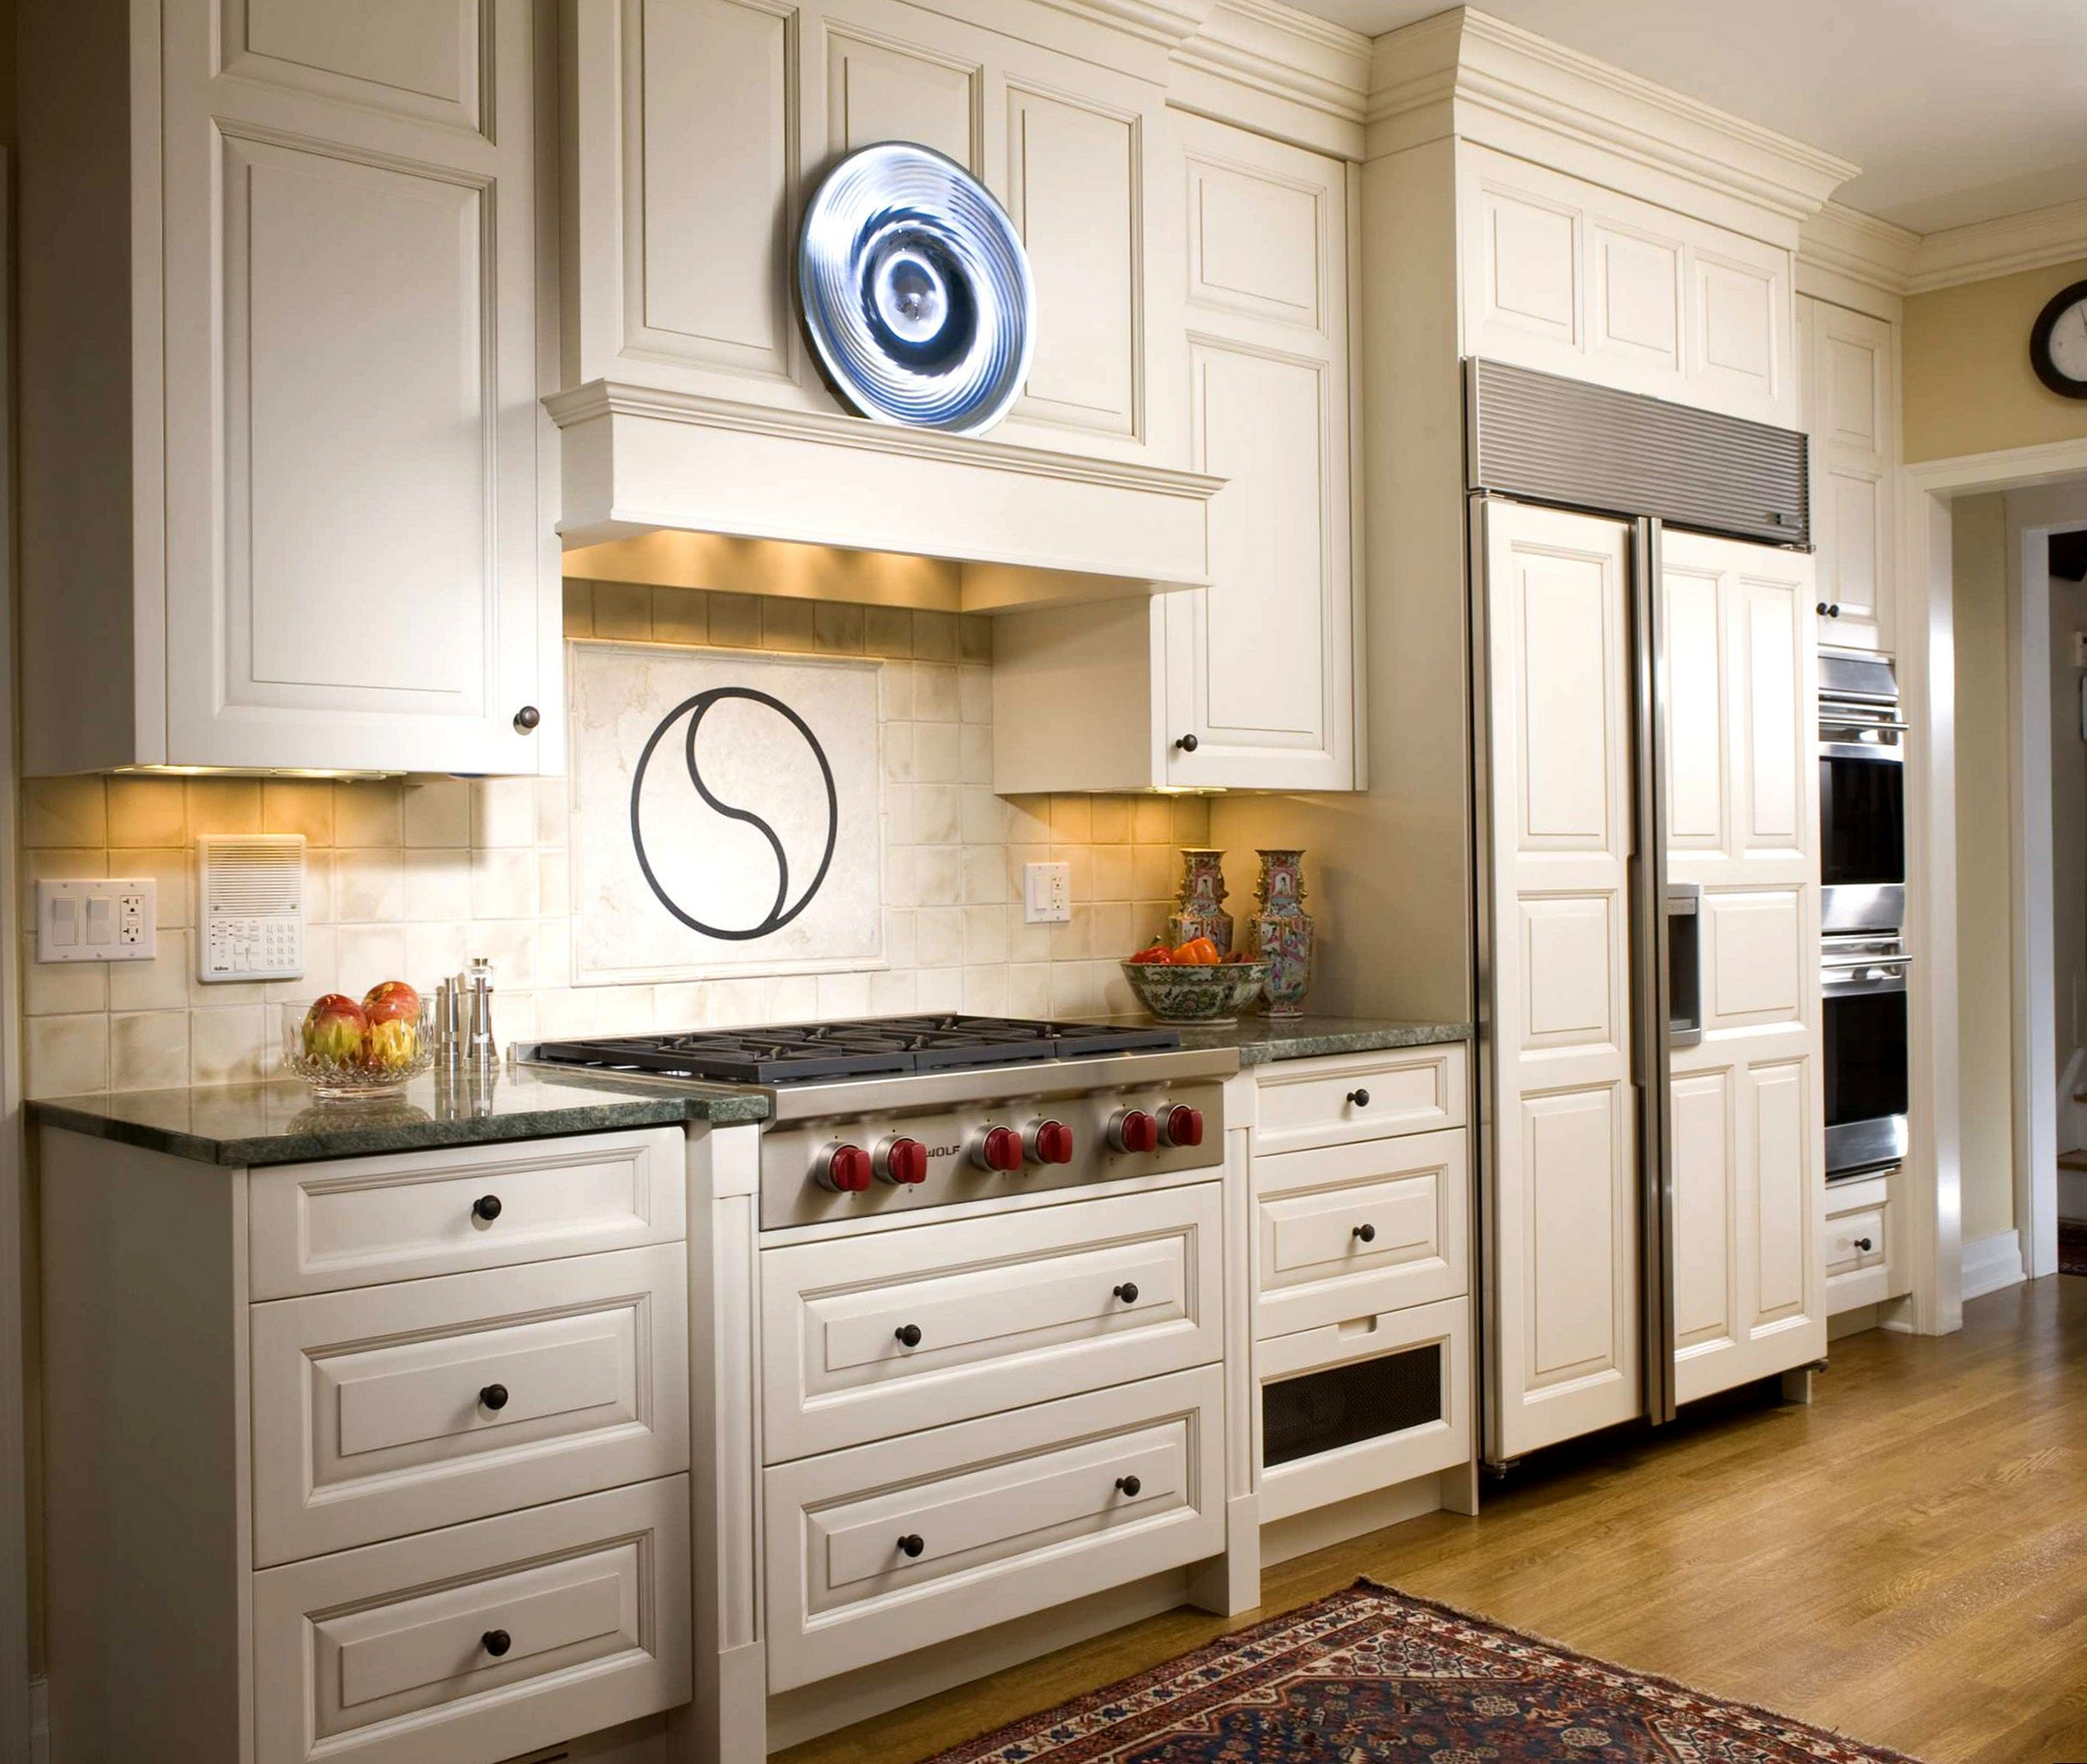 Best 15 Simple Kitchen Cabinet Ideas That Inspire You Simple 400 x 300